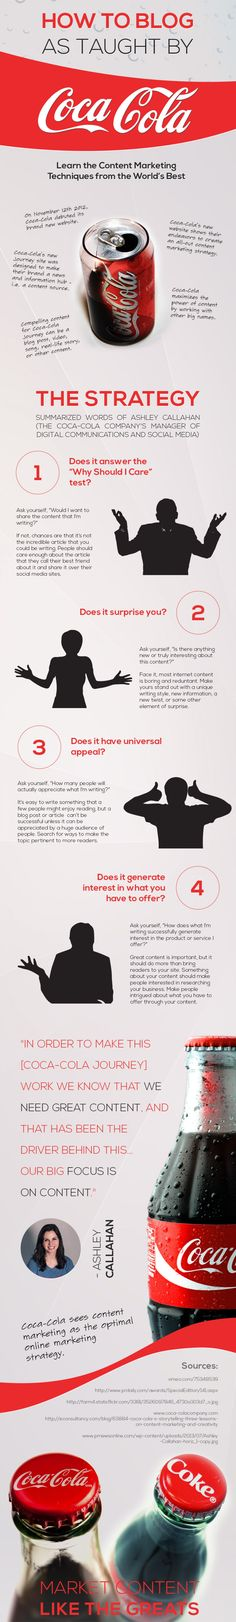 How to Blog, as Taught by Coca-Cola [INFOGRAPHIC] - http://dashburst.com/infographic/content-marketing-tips-coca-cola/